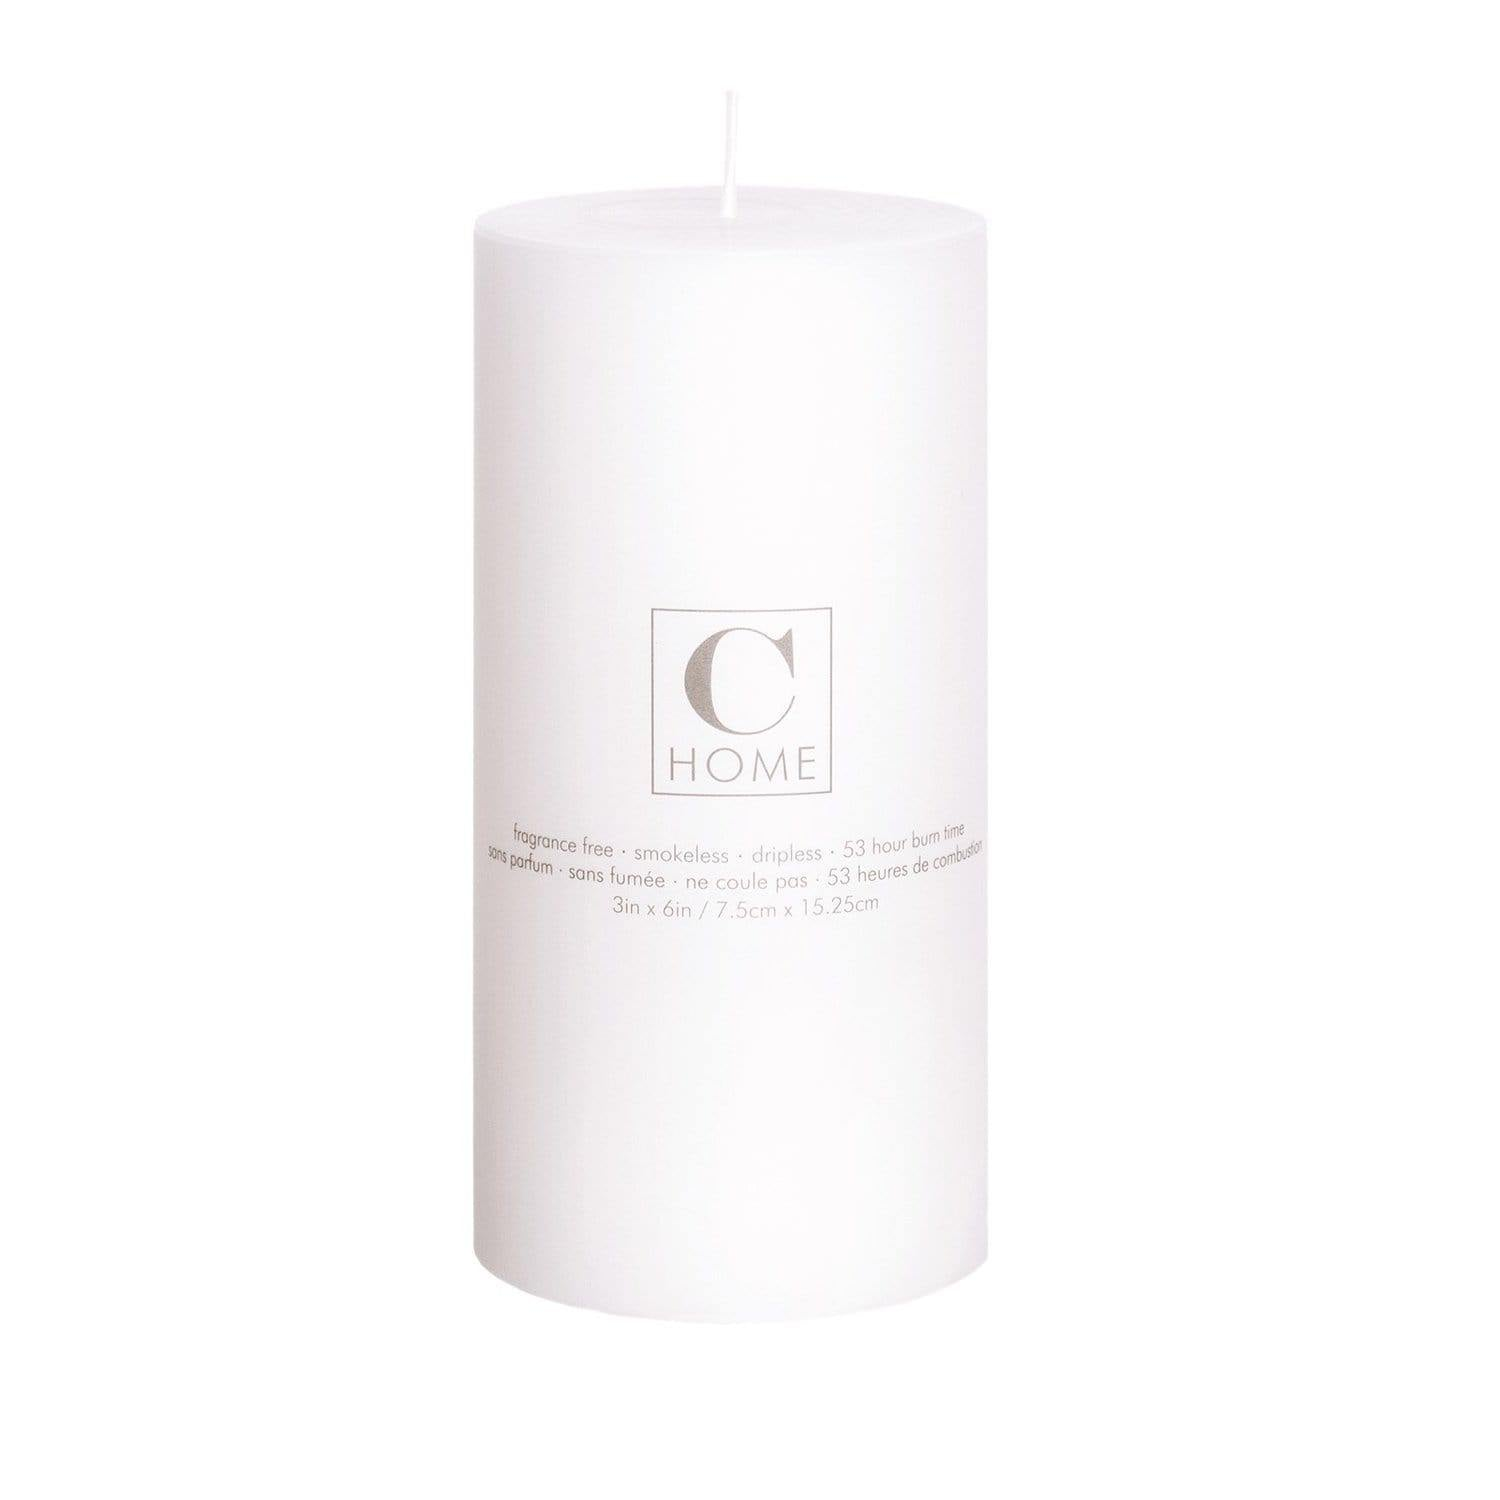 Candle White Pillar Candle 3 d x 6 h inch